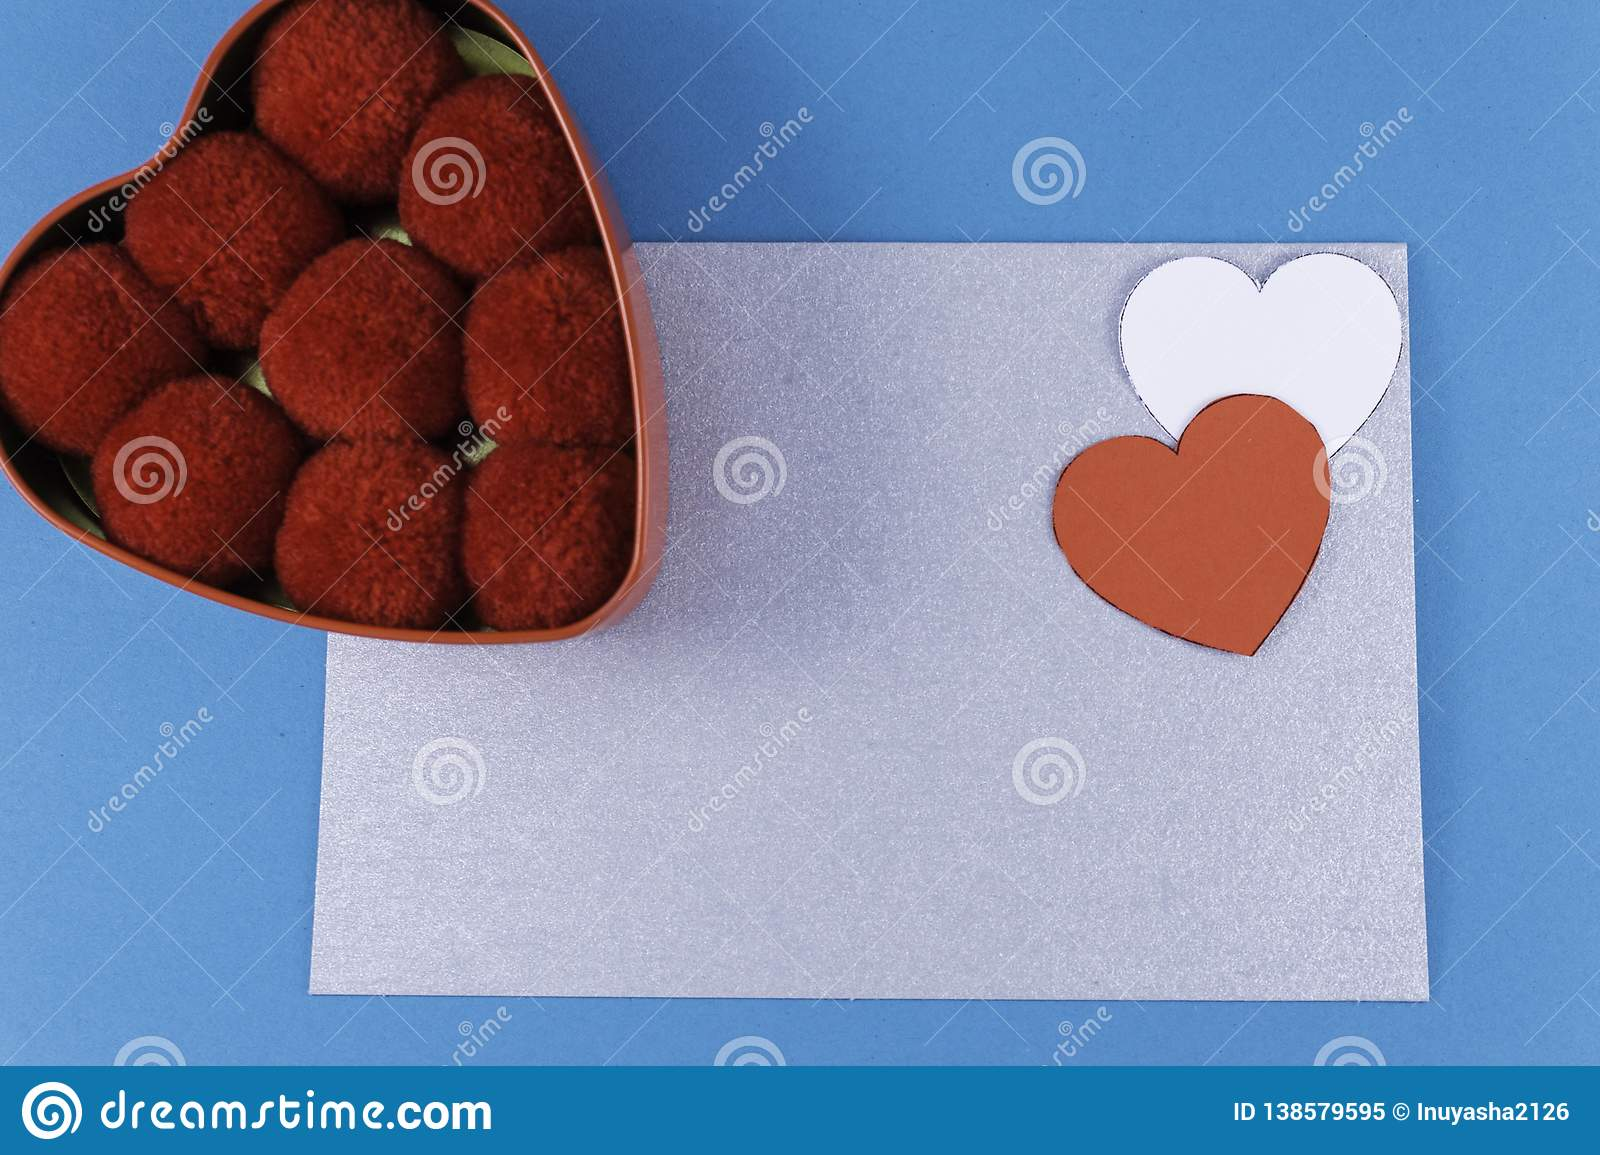 empty silver letter with two hearts of red and white color box next to balls of cotton red on a blue background